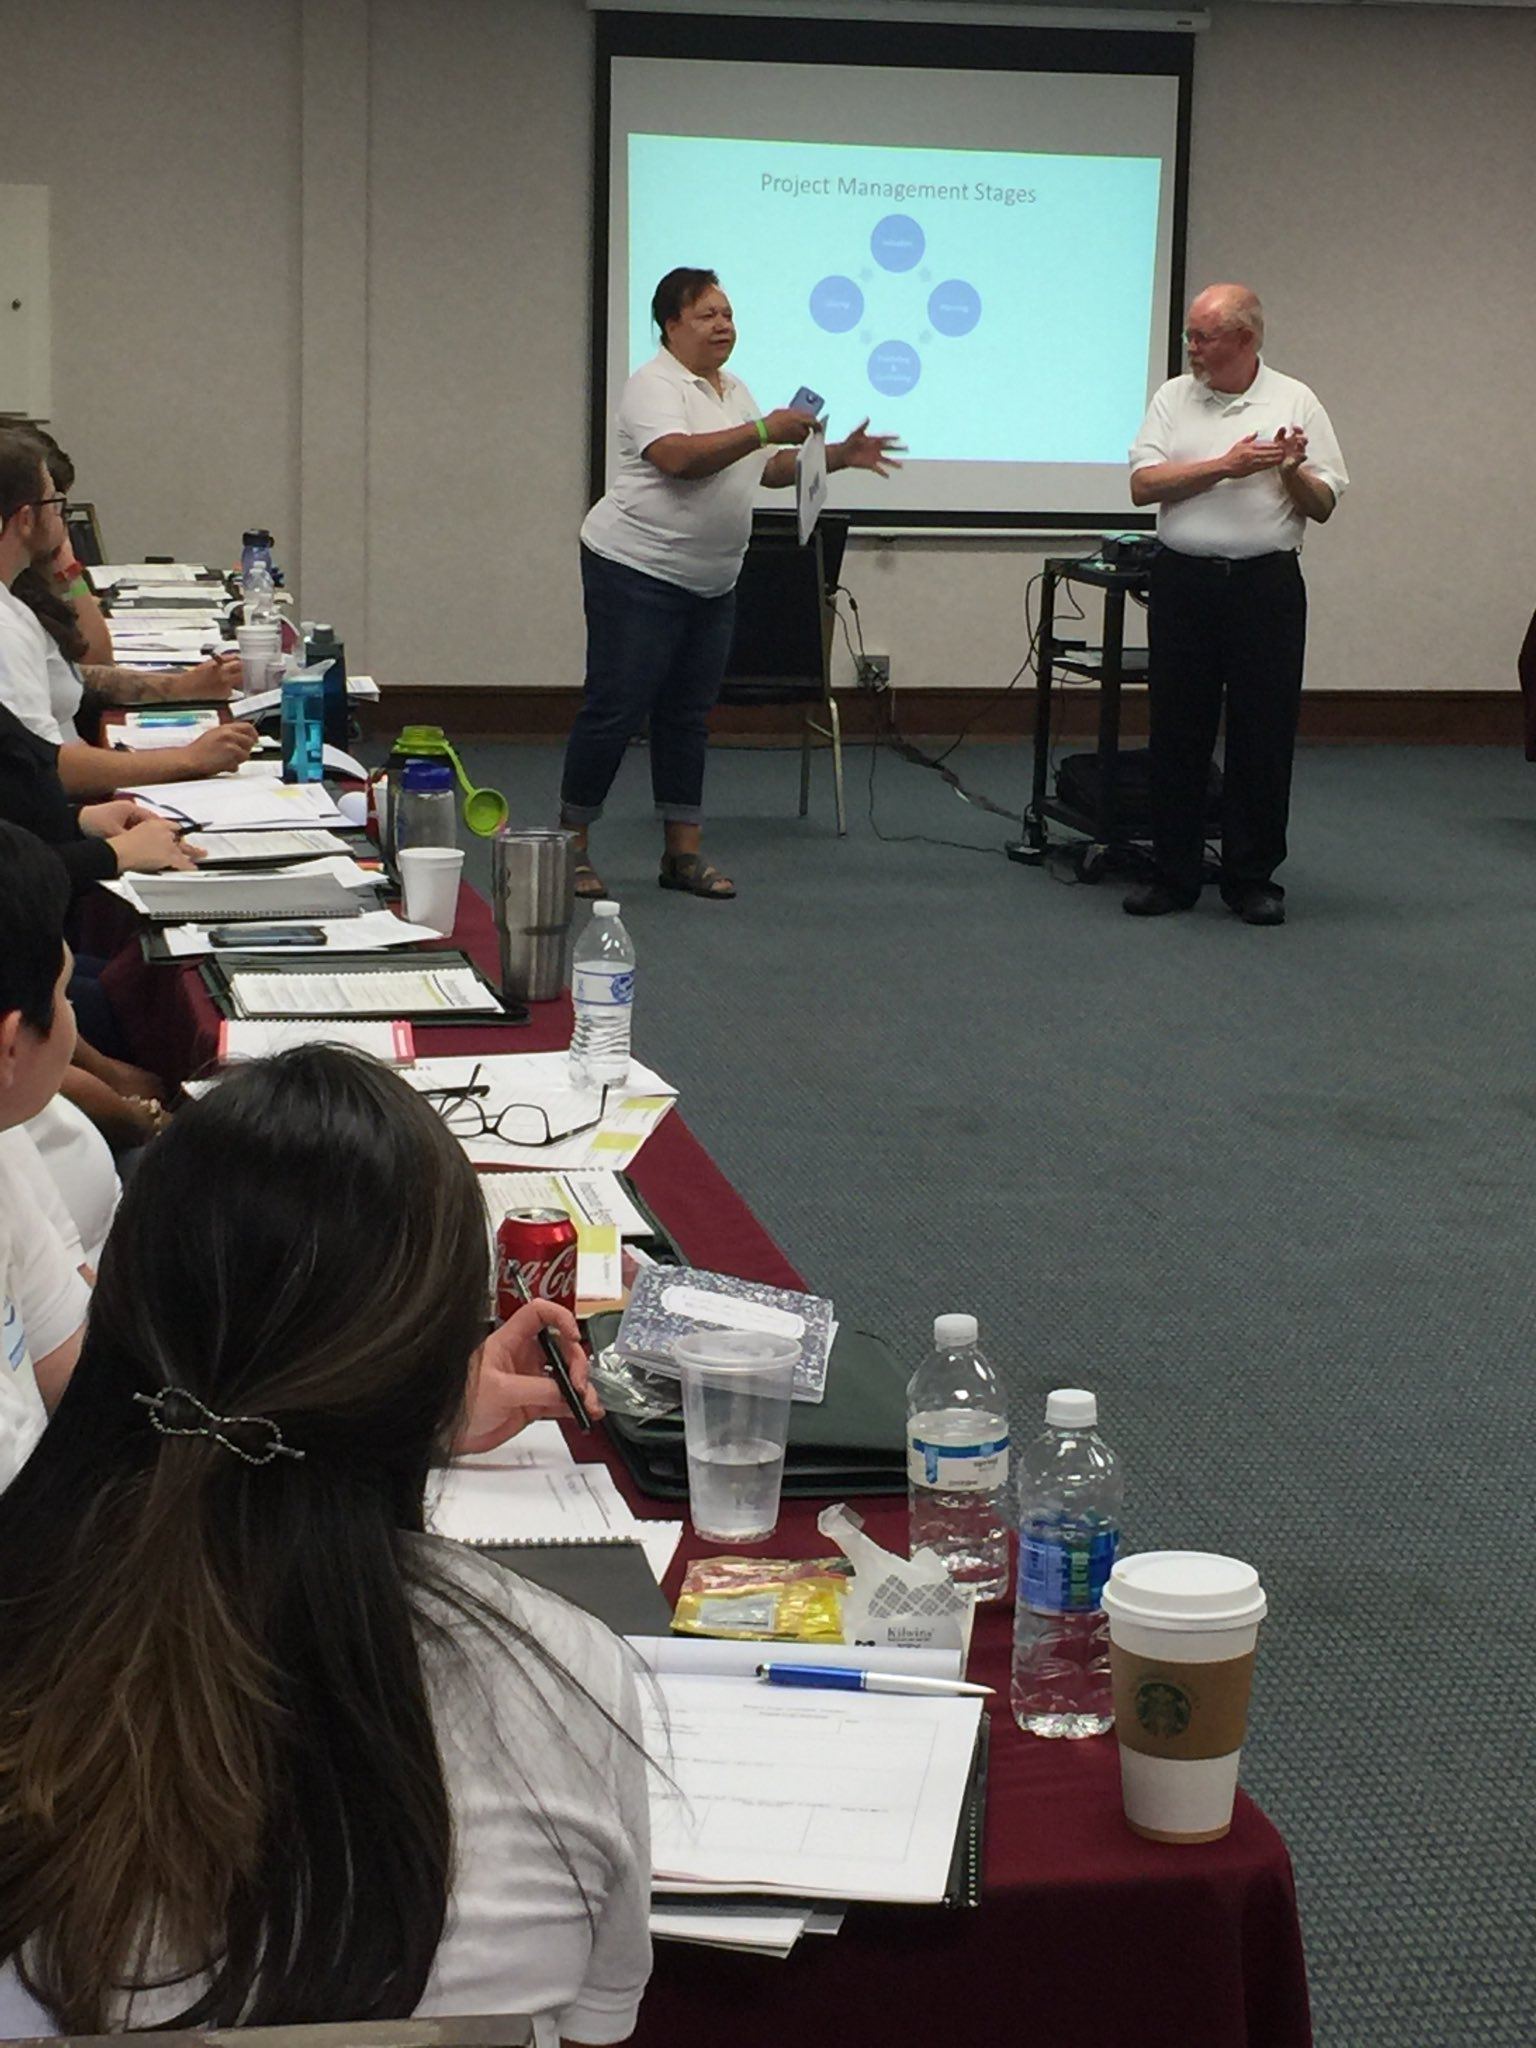 Teaching on Project Management, NCLA LI2016. #leadership #leadershipinstitute #leadershipdevelopment https://t.co/JqOUJp8pKB